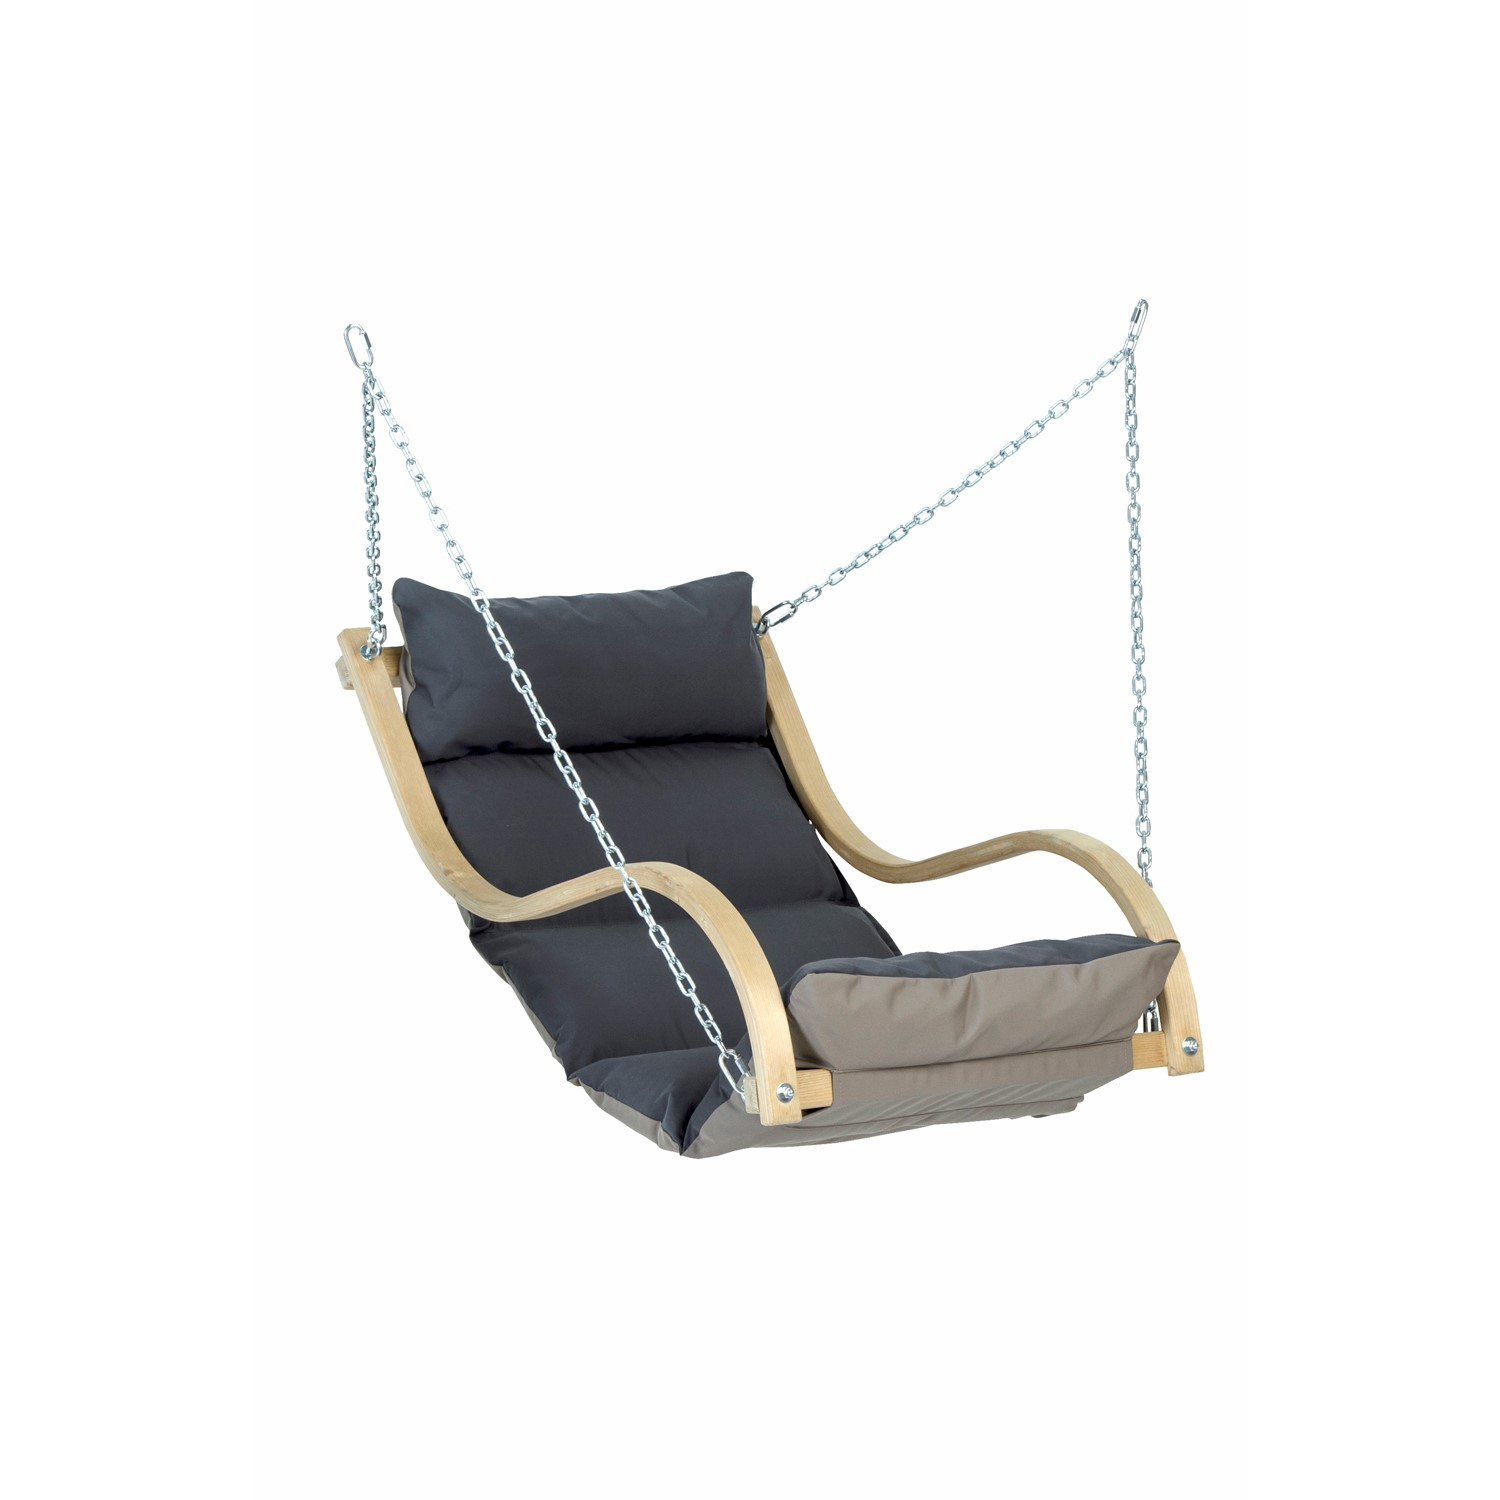 Fat Chair Wooden Garden Swing Chair With Anthracite Grey Cushion Chair Only